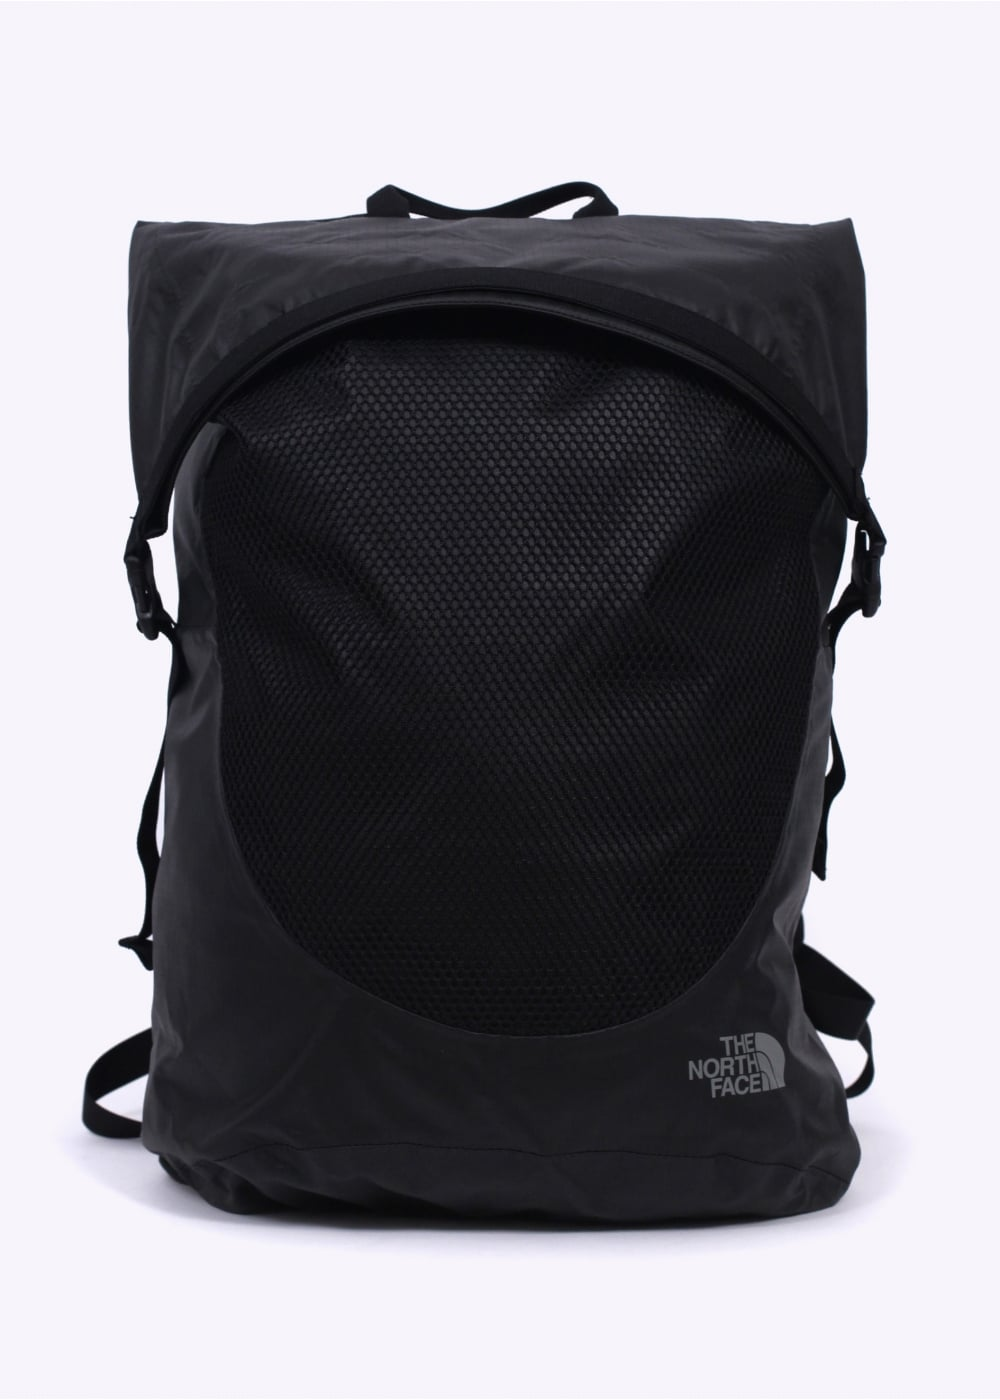 577c752101b6 The North Face Waterproof Daypack - Black - Bags from Triads UK